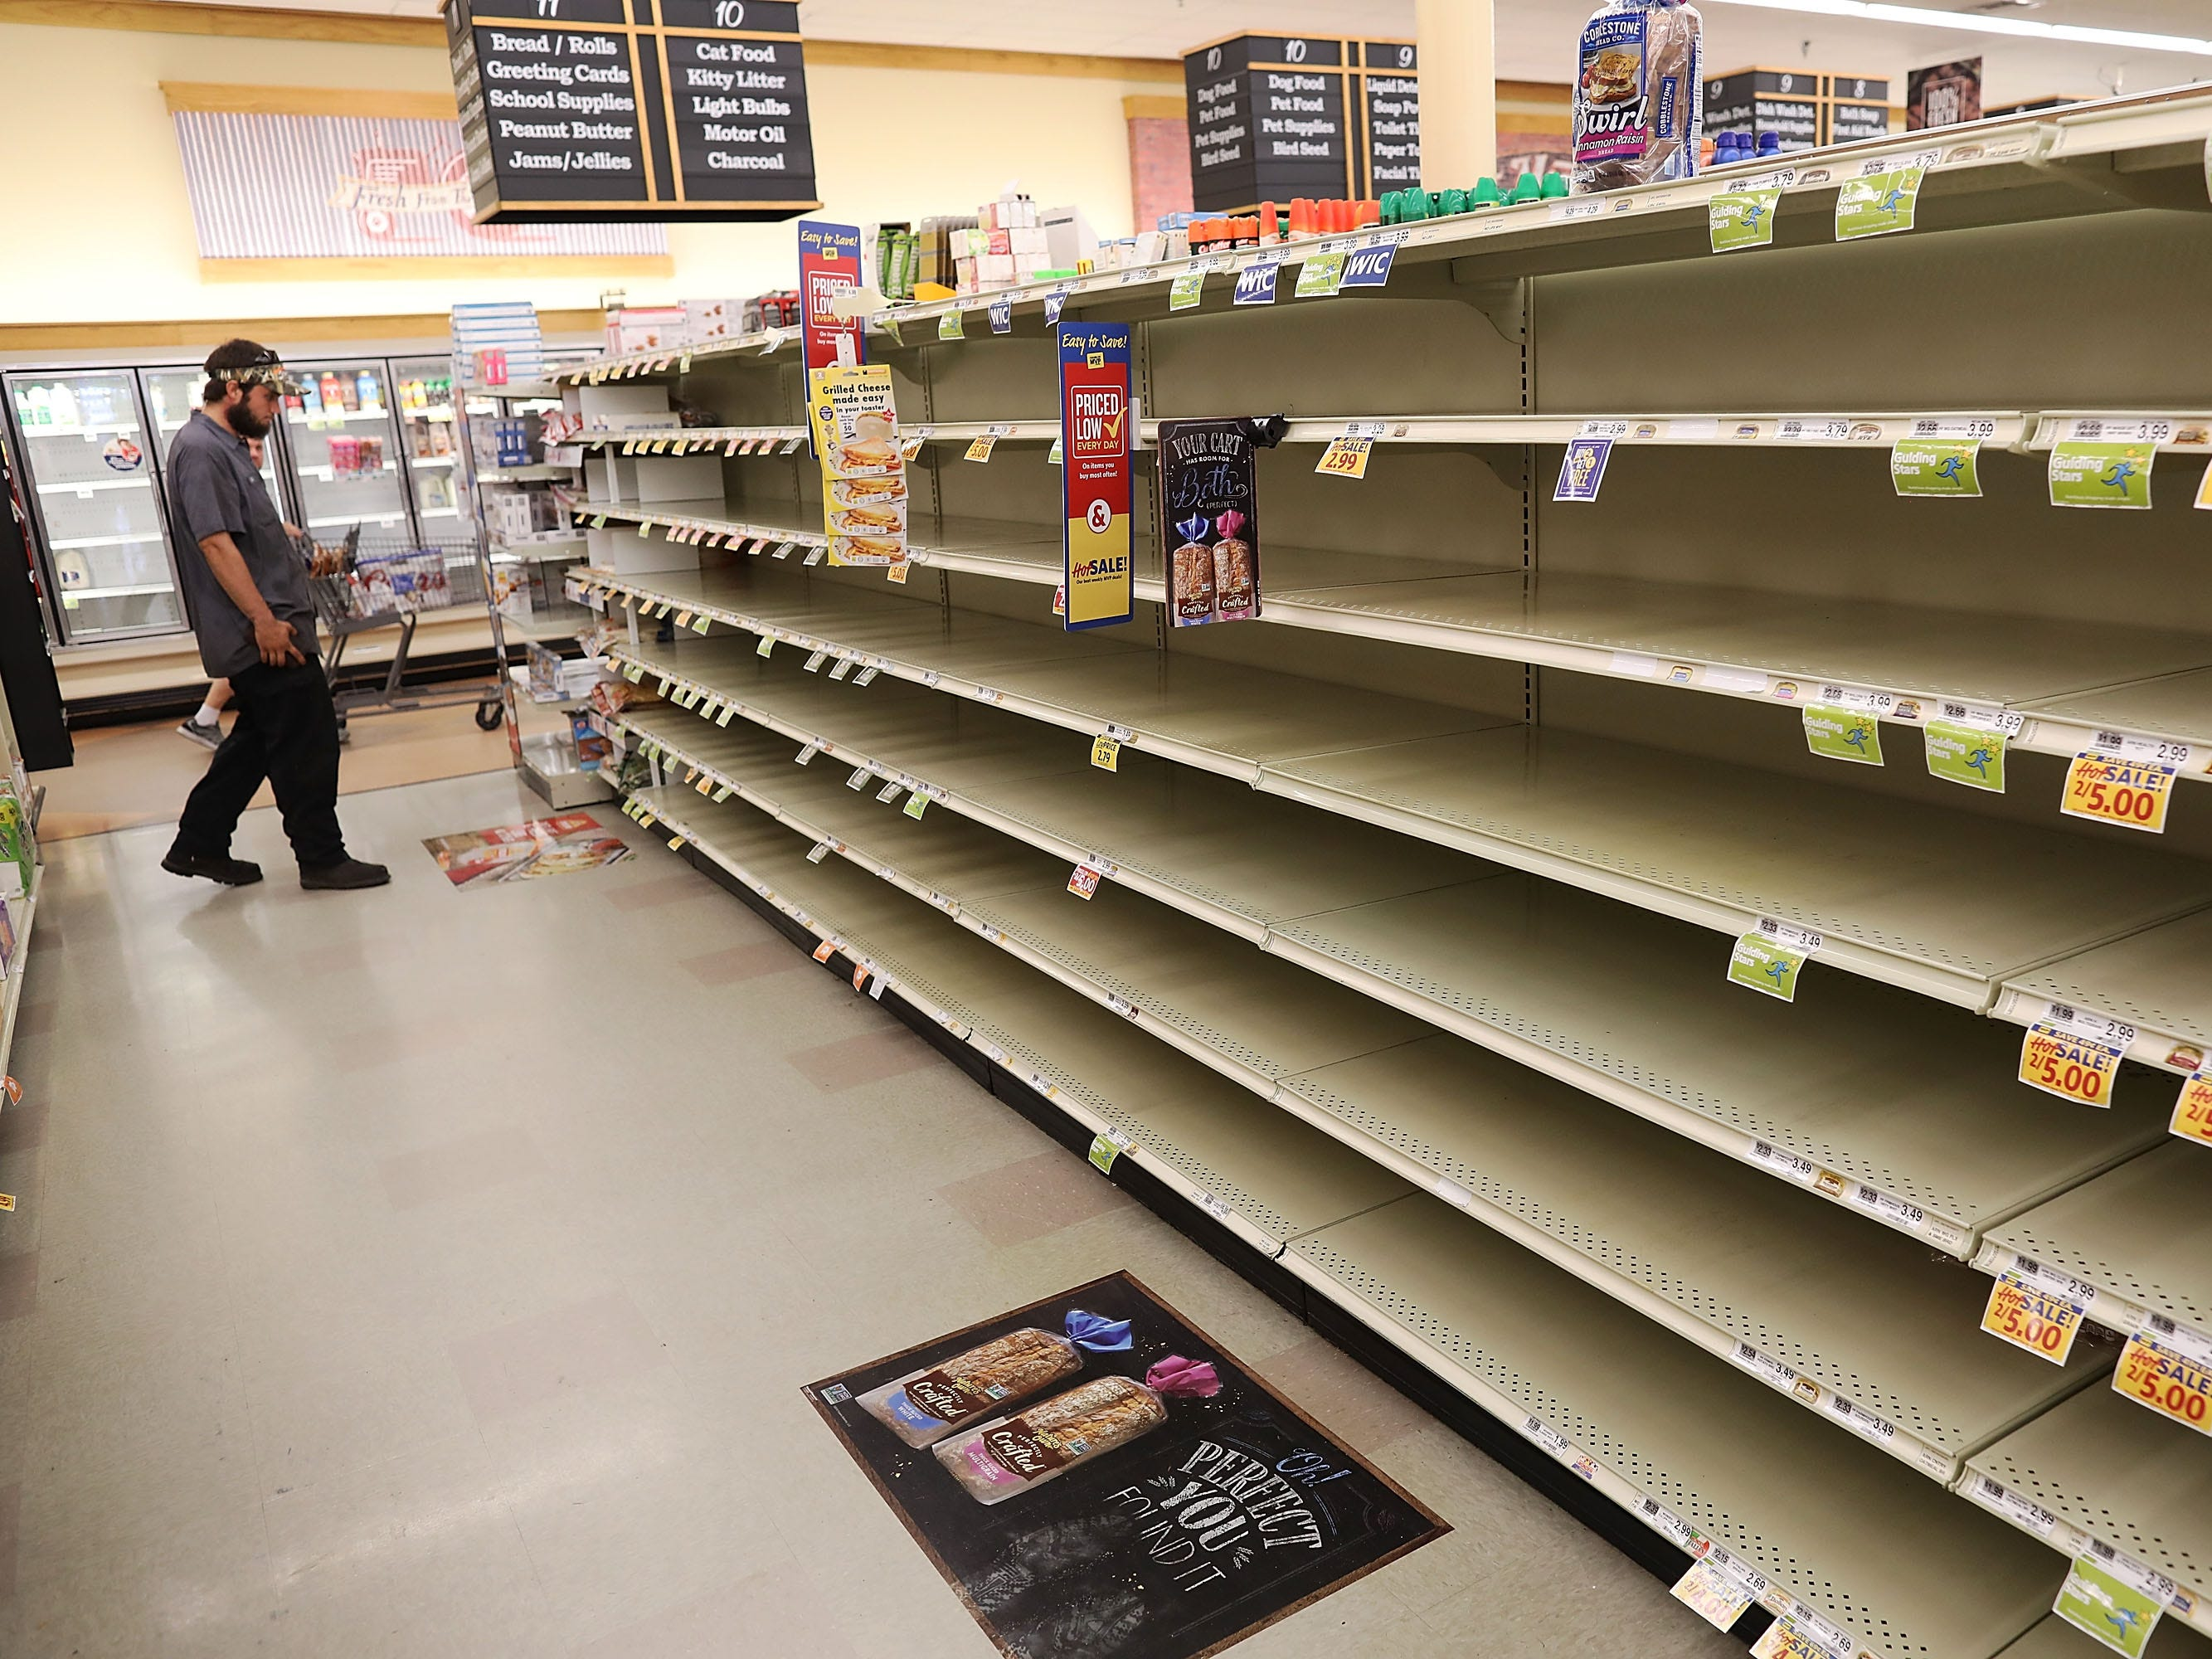 MYRTLE BEACH, SC - SEPTEMBER 11:  A store's bread shelves are bare as people stock up on food ahead of the arrival of Hurricane Florence on September 11, 2018 in Myrtle Beach, South Carolina. Florence, already packing 130 mph winds, is expected to make landfall by late Thursday at near Category 5 strength along the Virginia, North Carolina and South Carolina coastline.